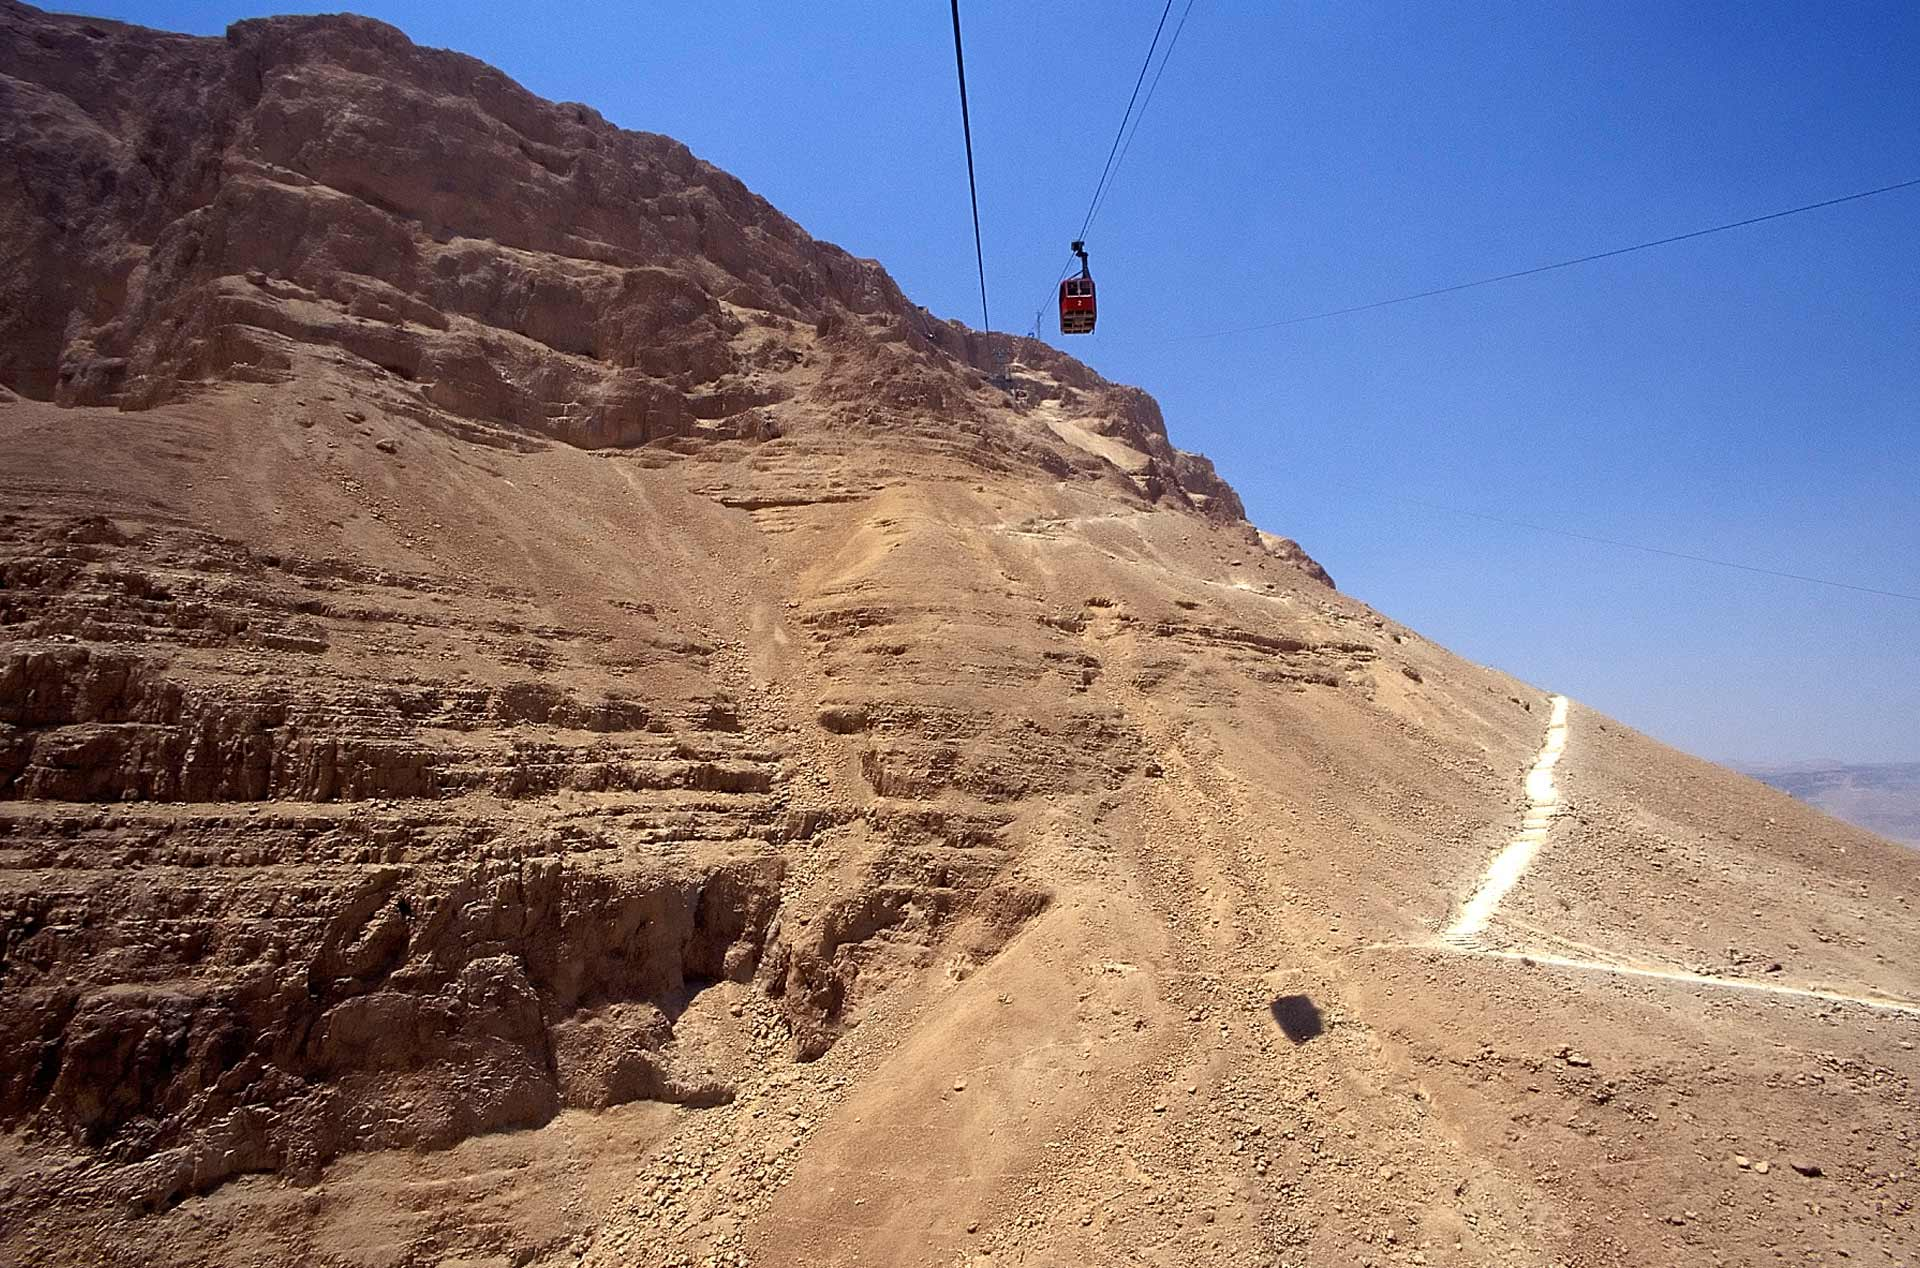 Snake Path with cable car lines, Masada, Israel